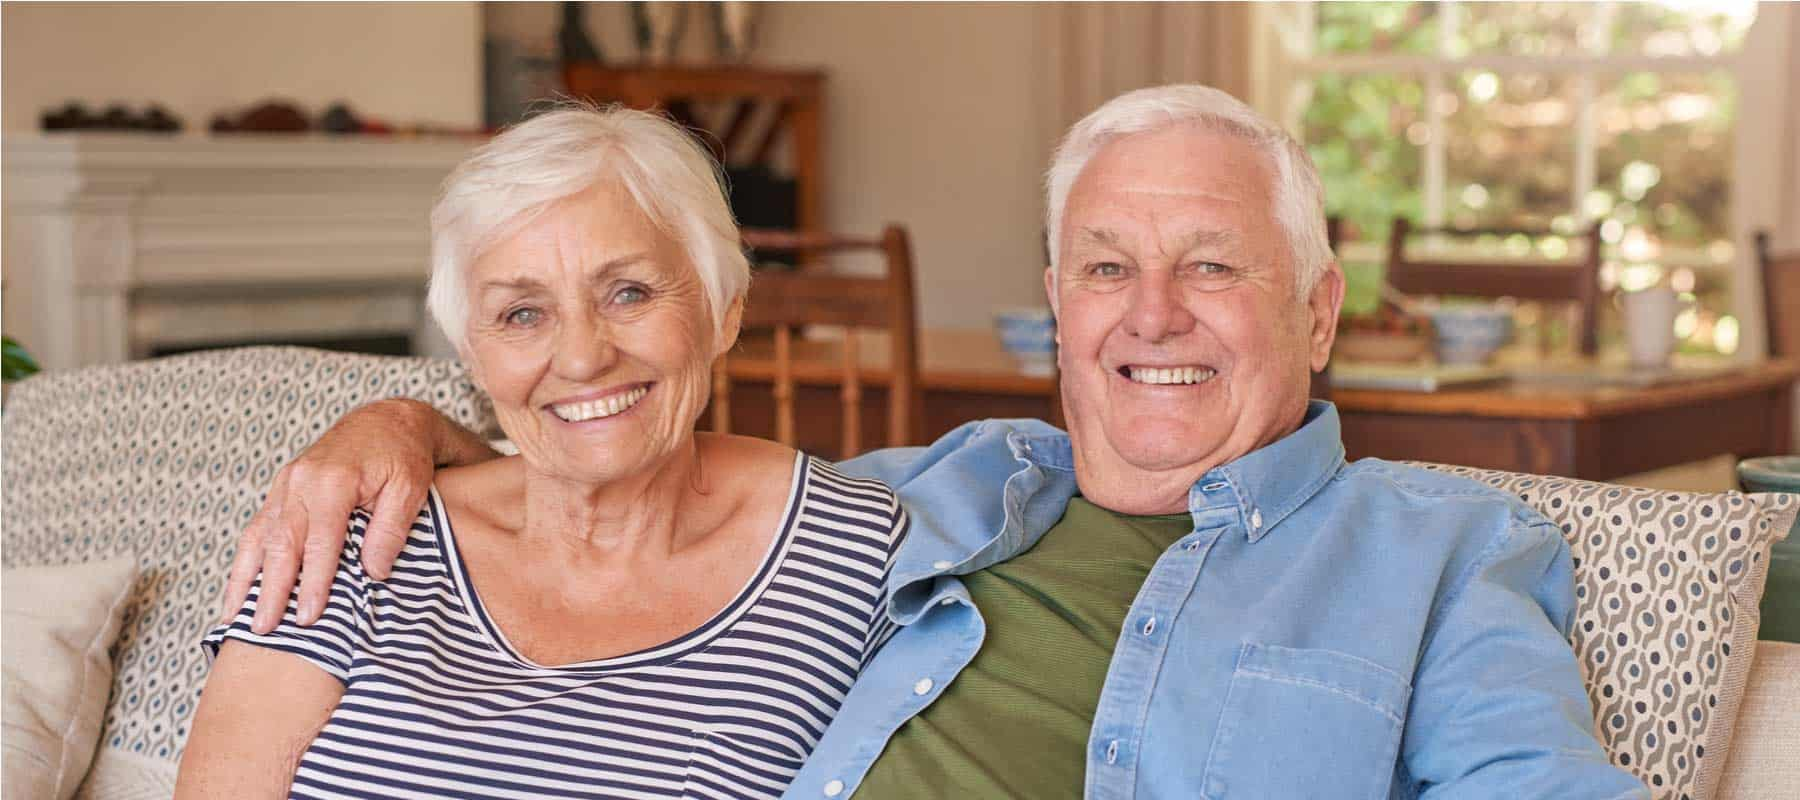 Common eye diseases that develop with age